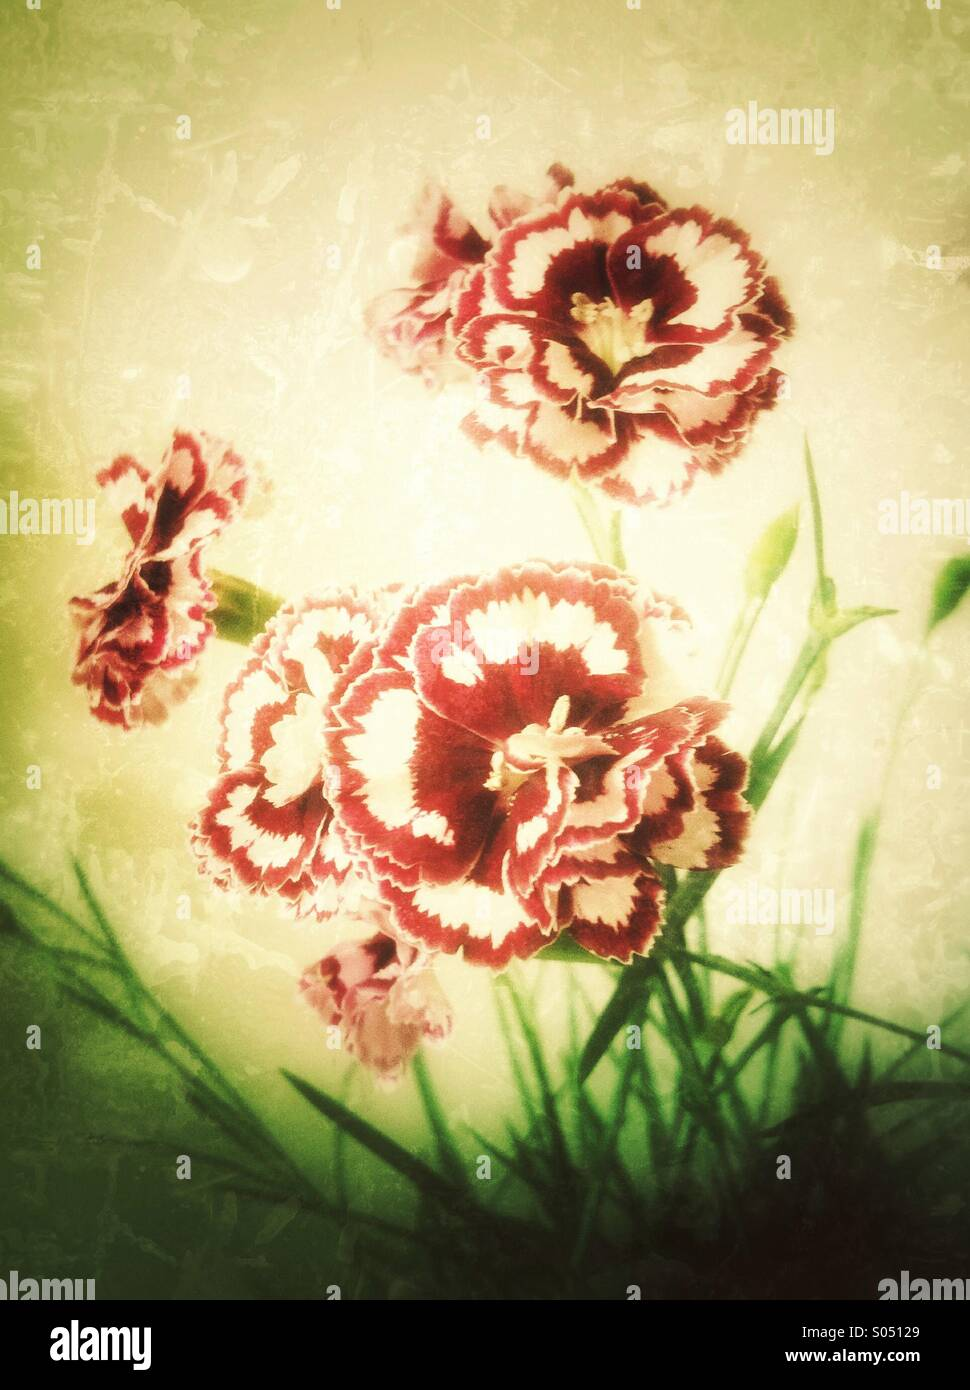 Red white dianthus flowers - Stock Image